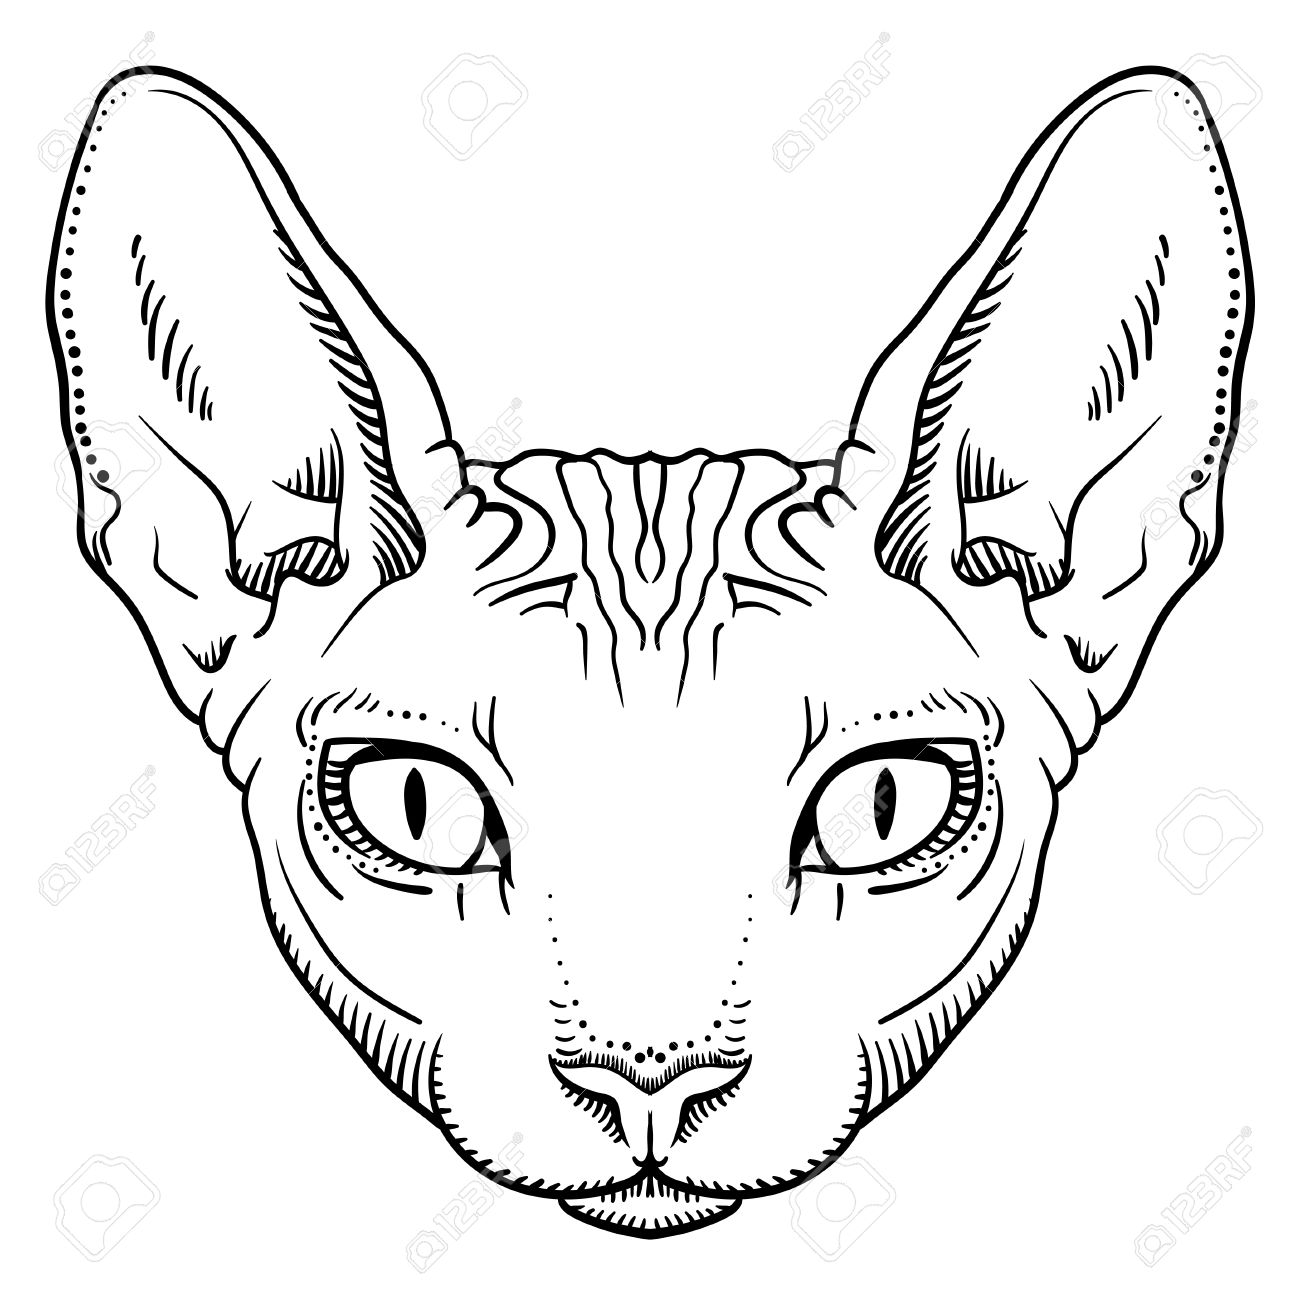 Sphynx Cat clipart #12, Download drawings